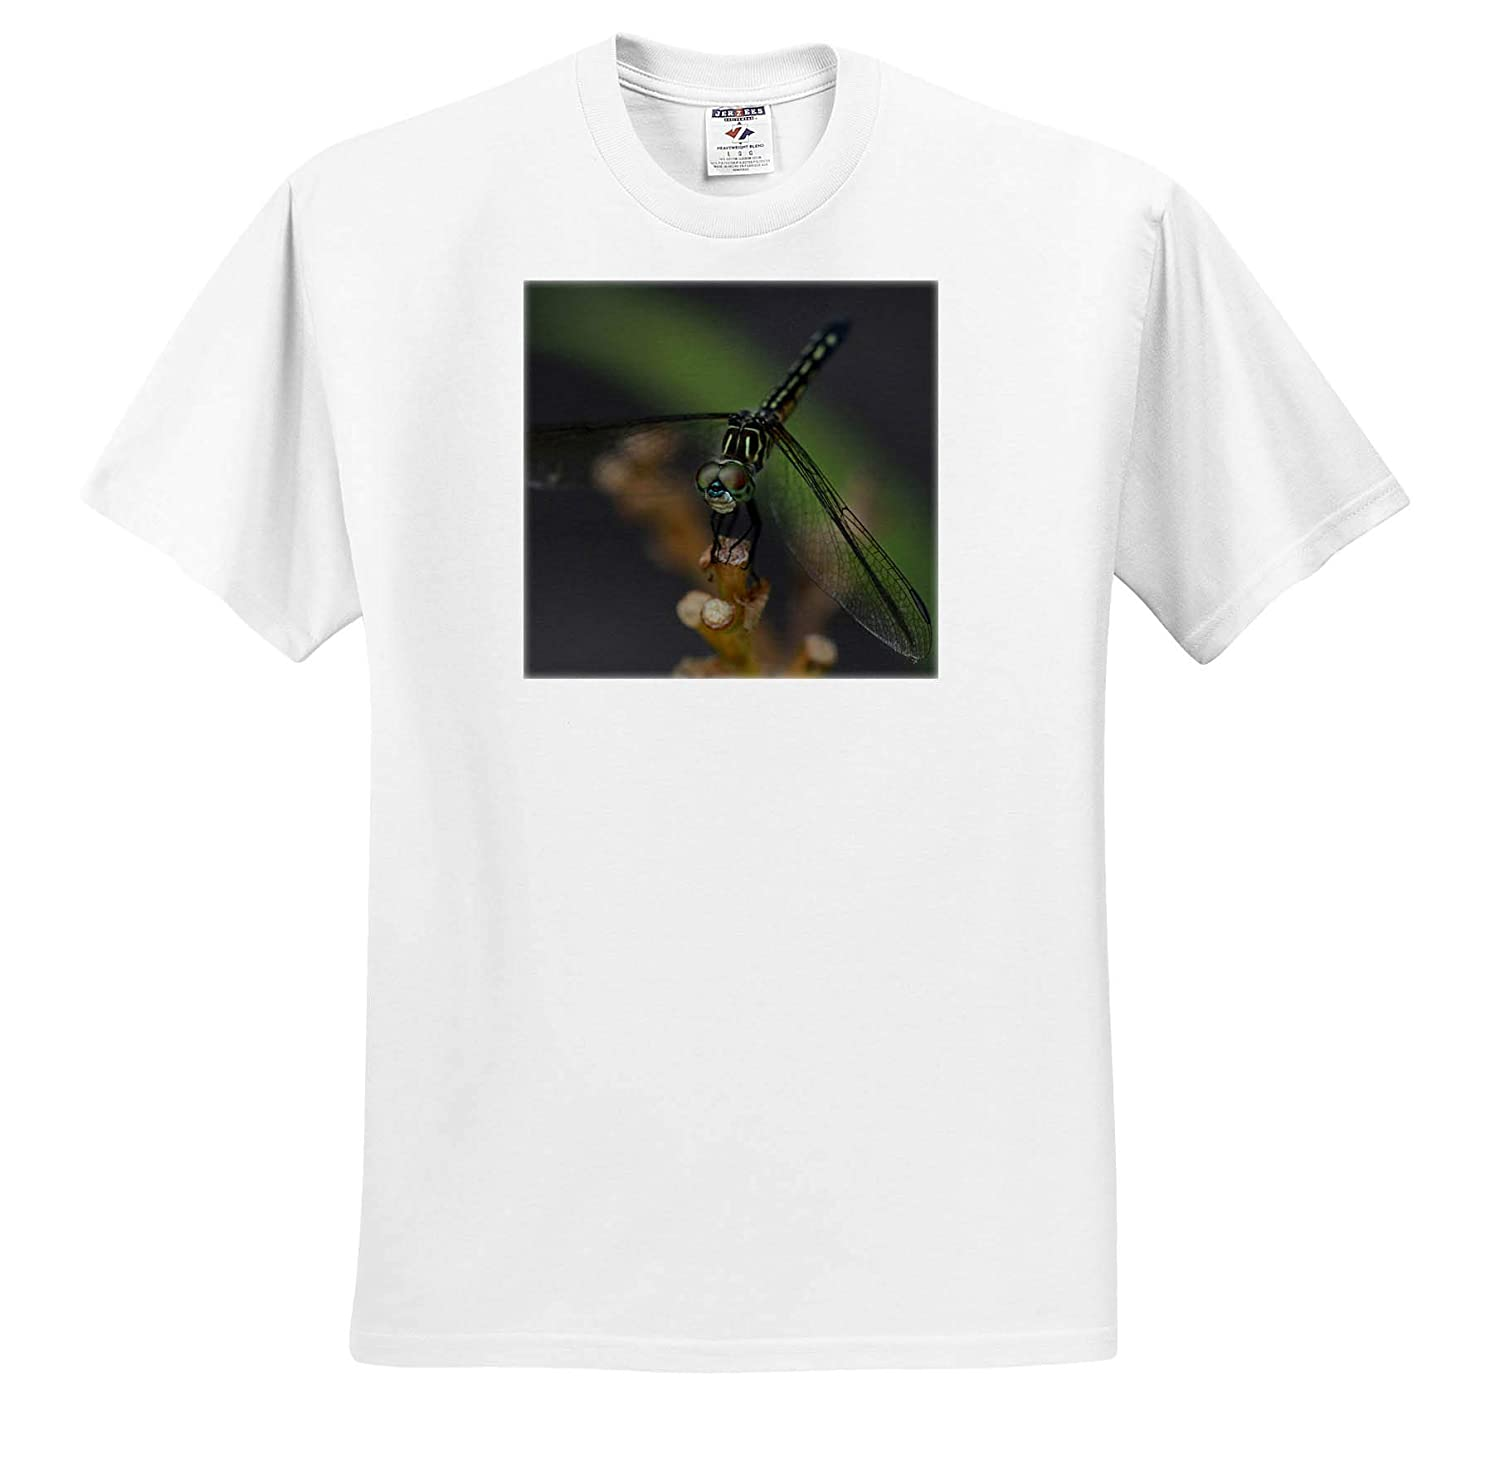 3dRose Stamp City - Adult T-Shirt XL Insects ts/_319060 Macro Photograph of a Common sanddragon Holding on to a Stick